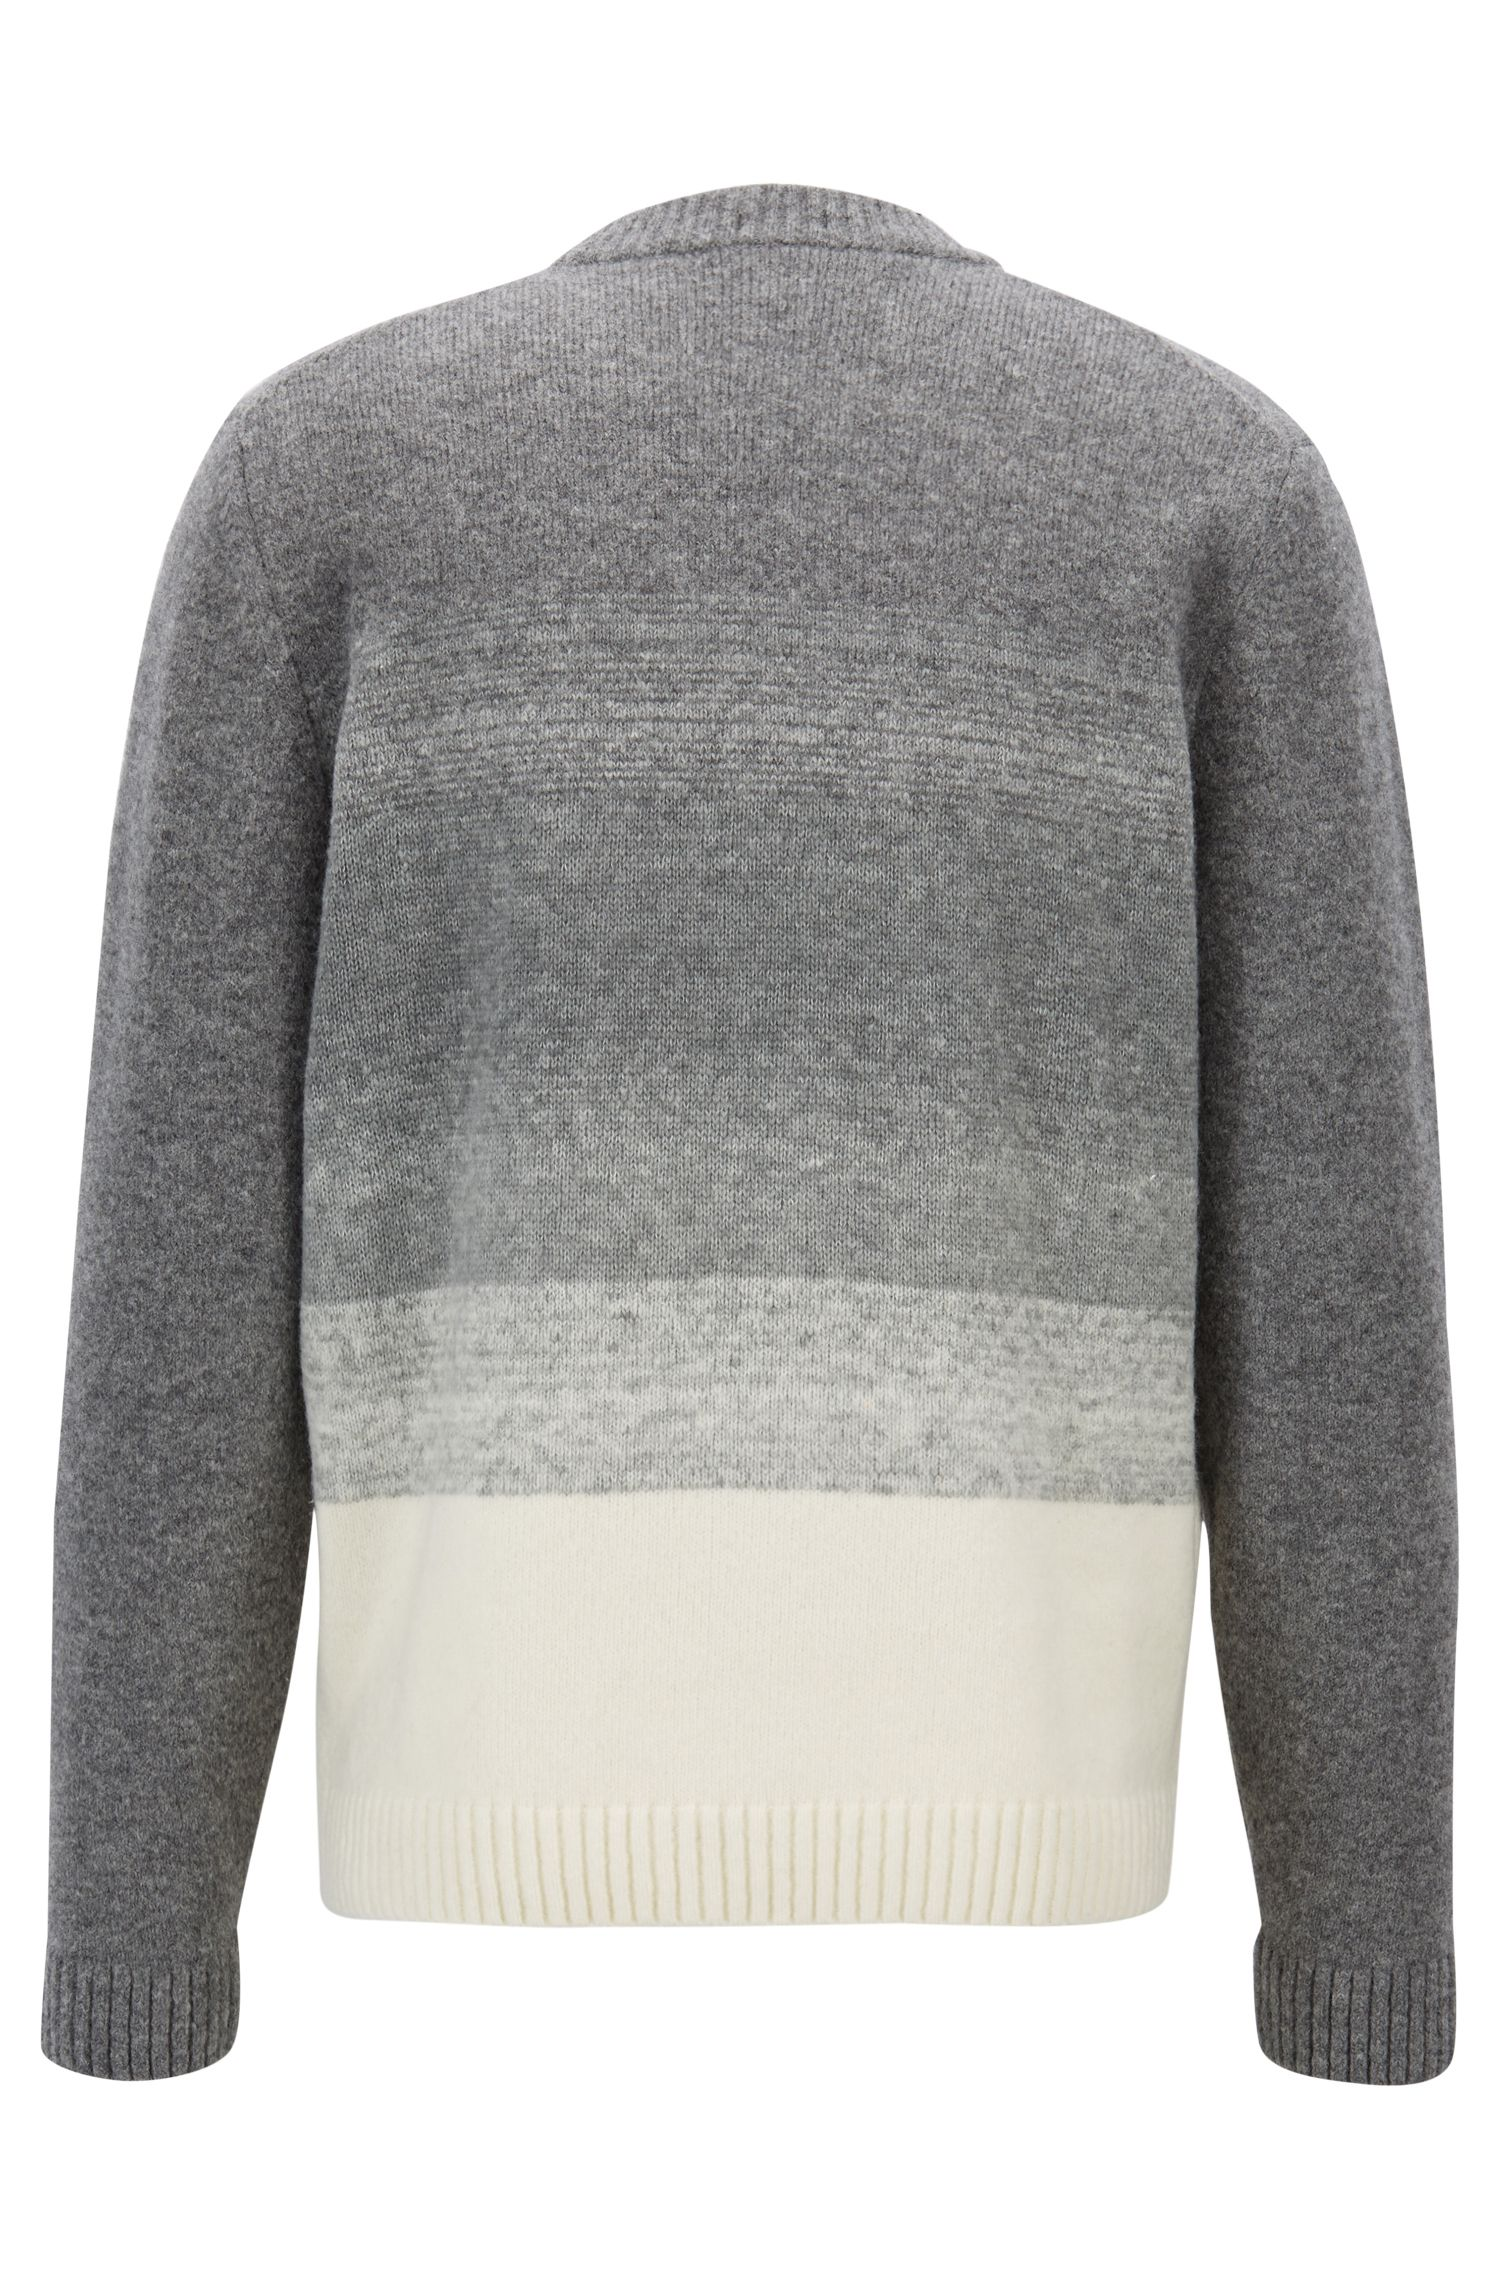 Knitted sweater in a wool blend with dégradé effect, Silver